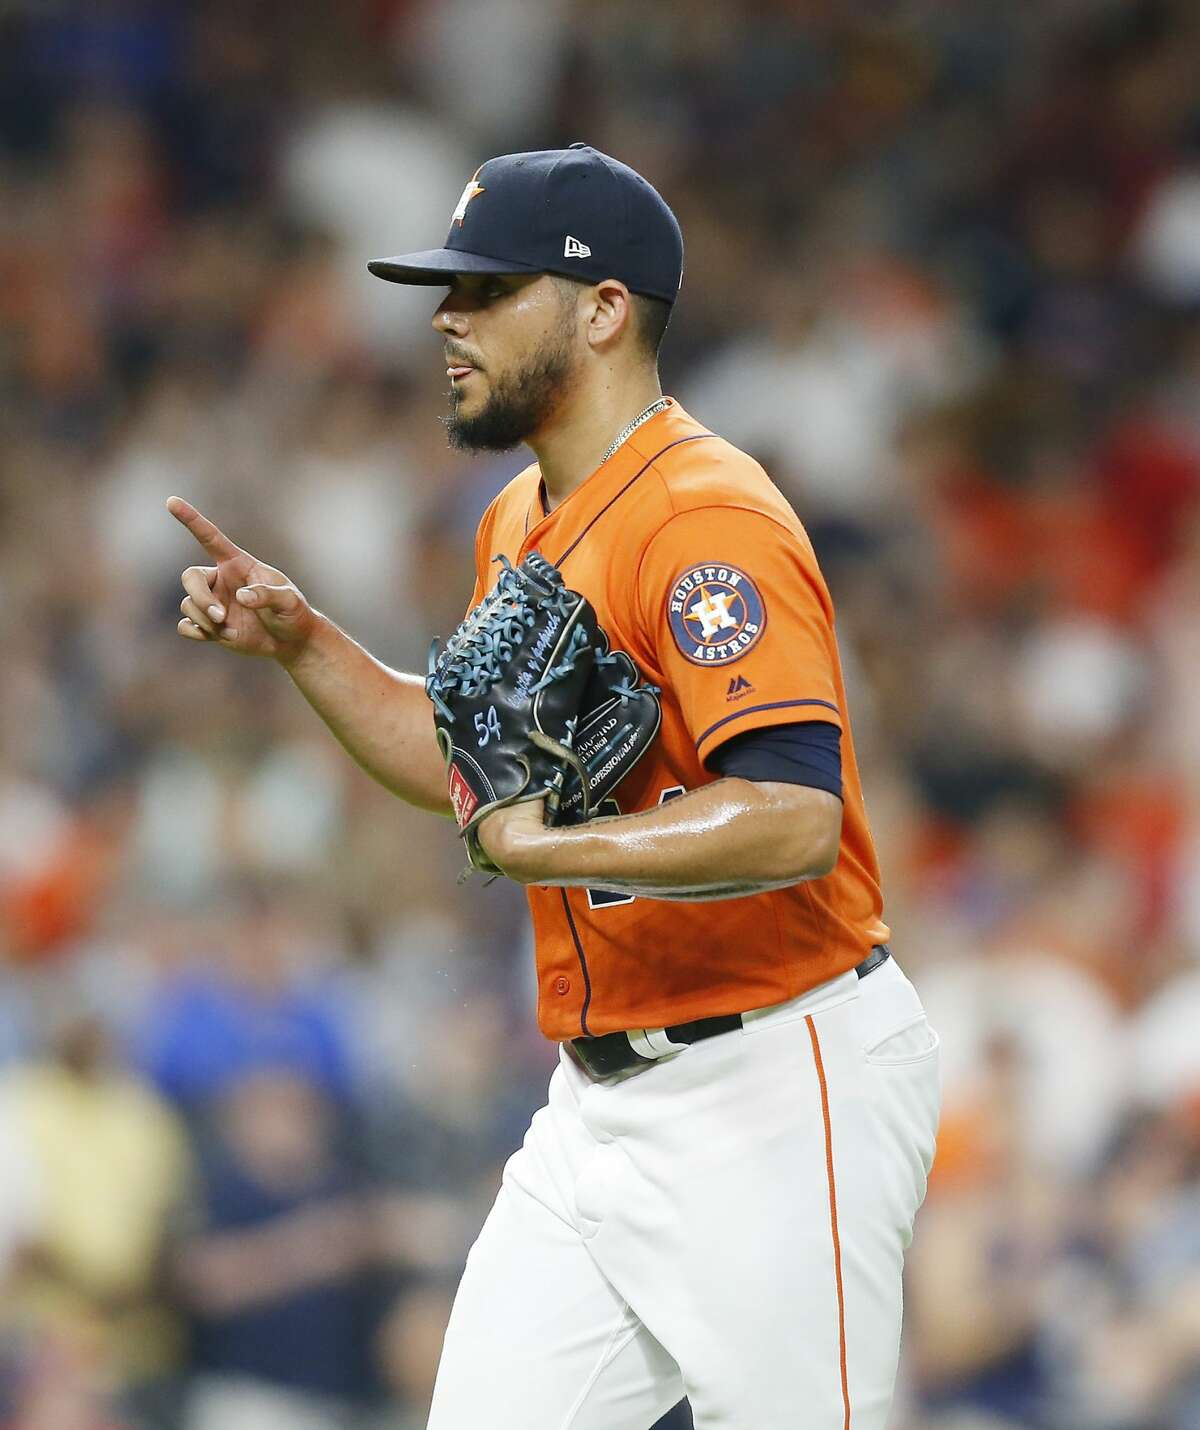 Houston Astros relief pitcher Roberto Osuna (54) celebrates the teams 4-3 win over theTexas Rangers at Minute Maid Park on Friday, July 19, 2019 in Houston.